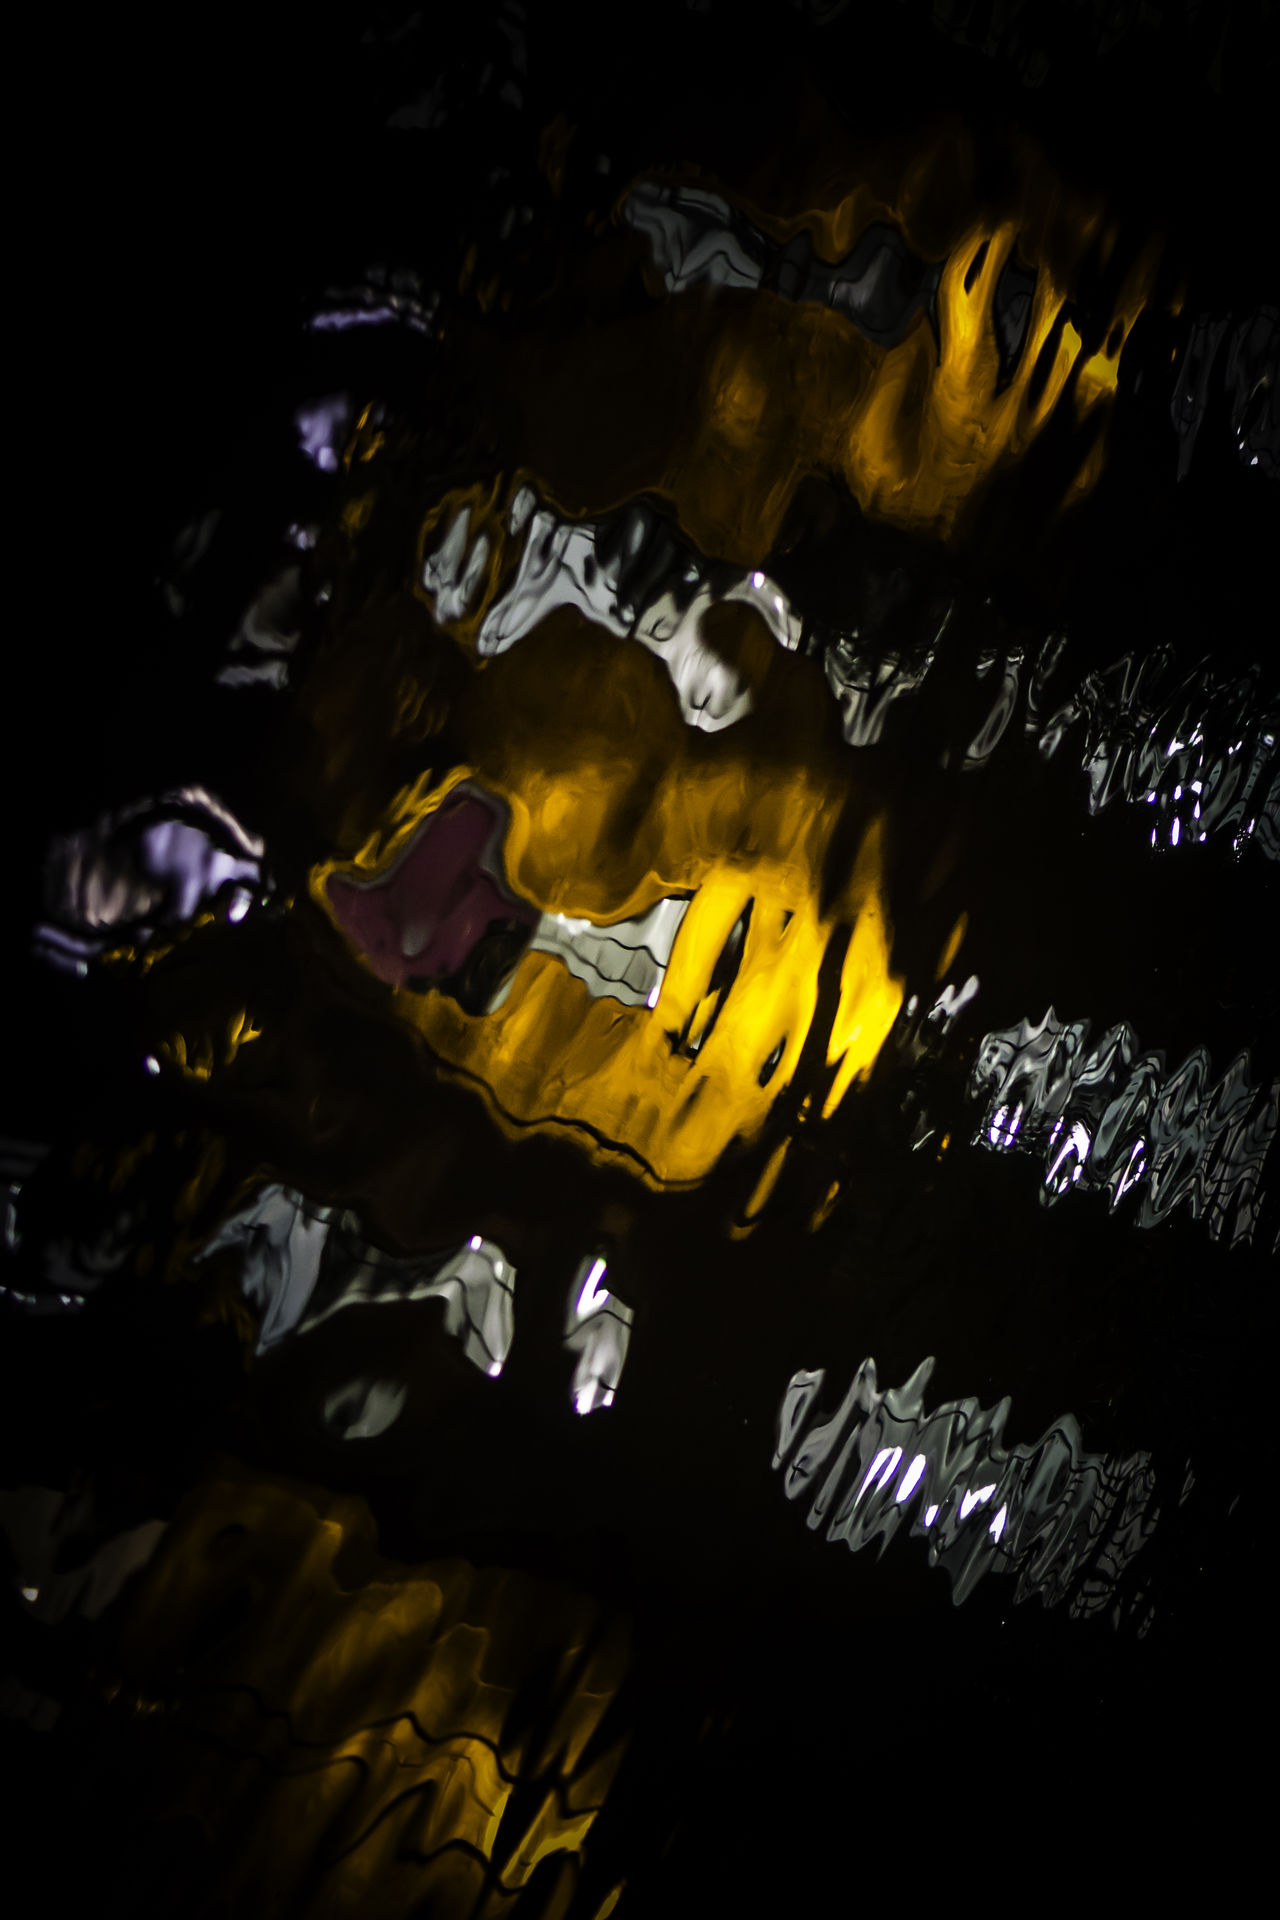 Abstract Abstract Photography Abstractions In Colors Black Background Blur Blurred Blurry Darkness And Light Dream Dreaming Night No People Orange Orange Color Outdoors Reflection Reflections Reflections In The Water Ripples Ripples In The Water Water Water Reflections